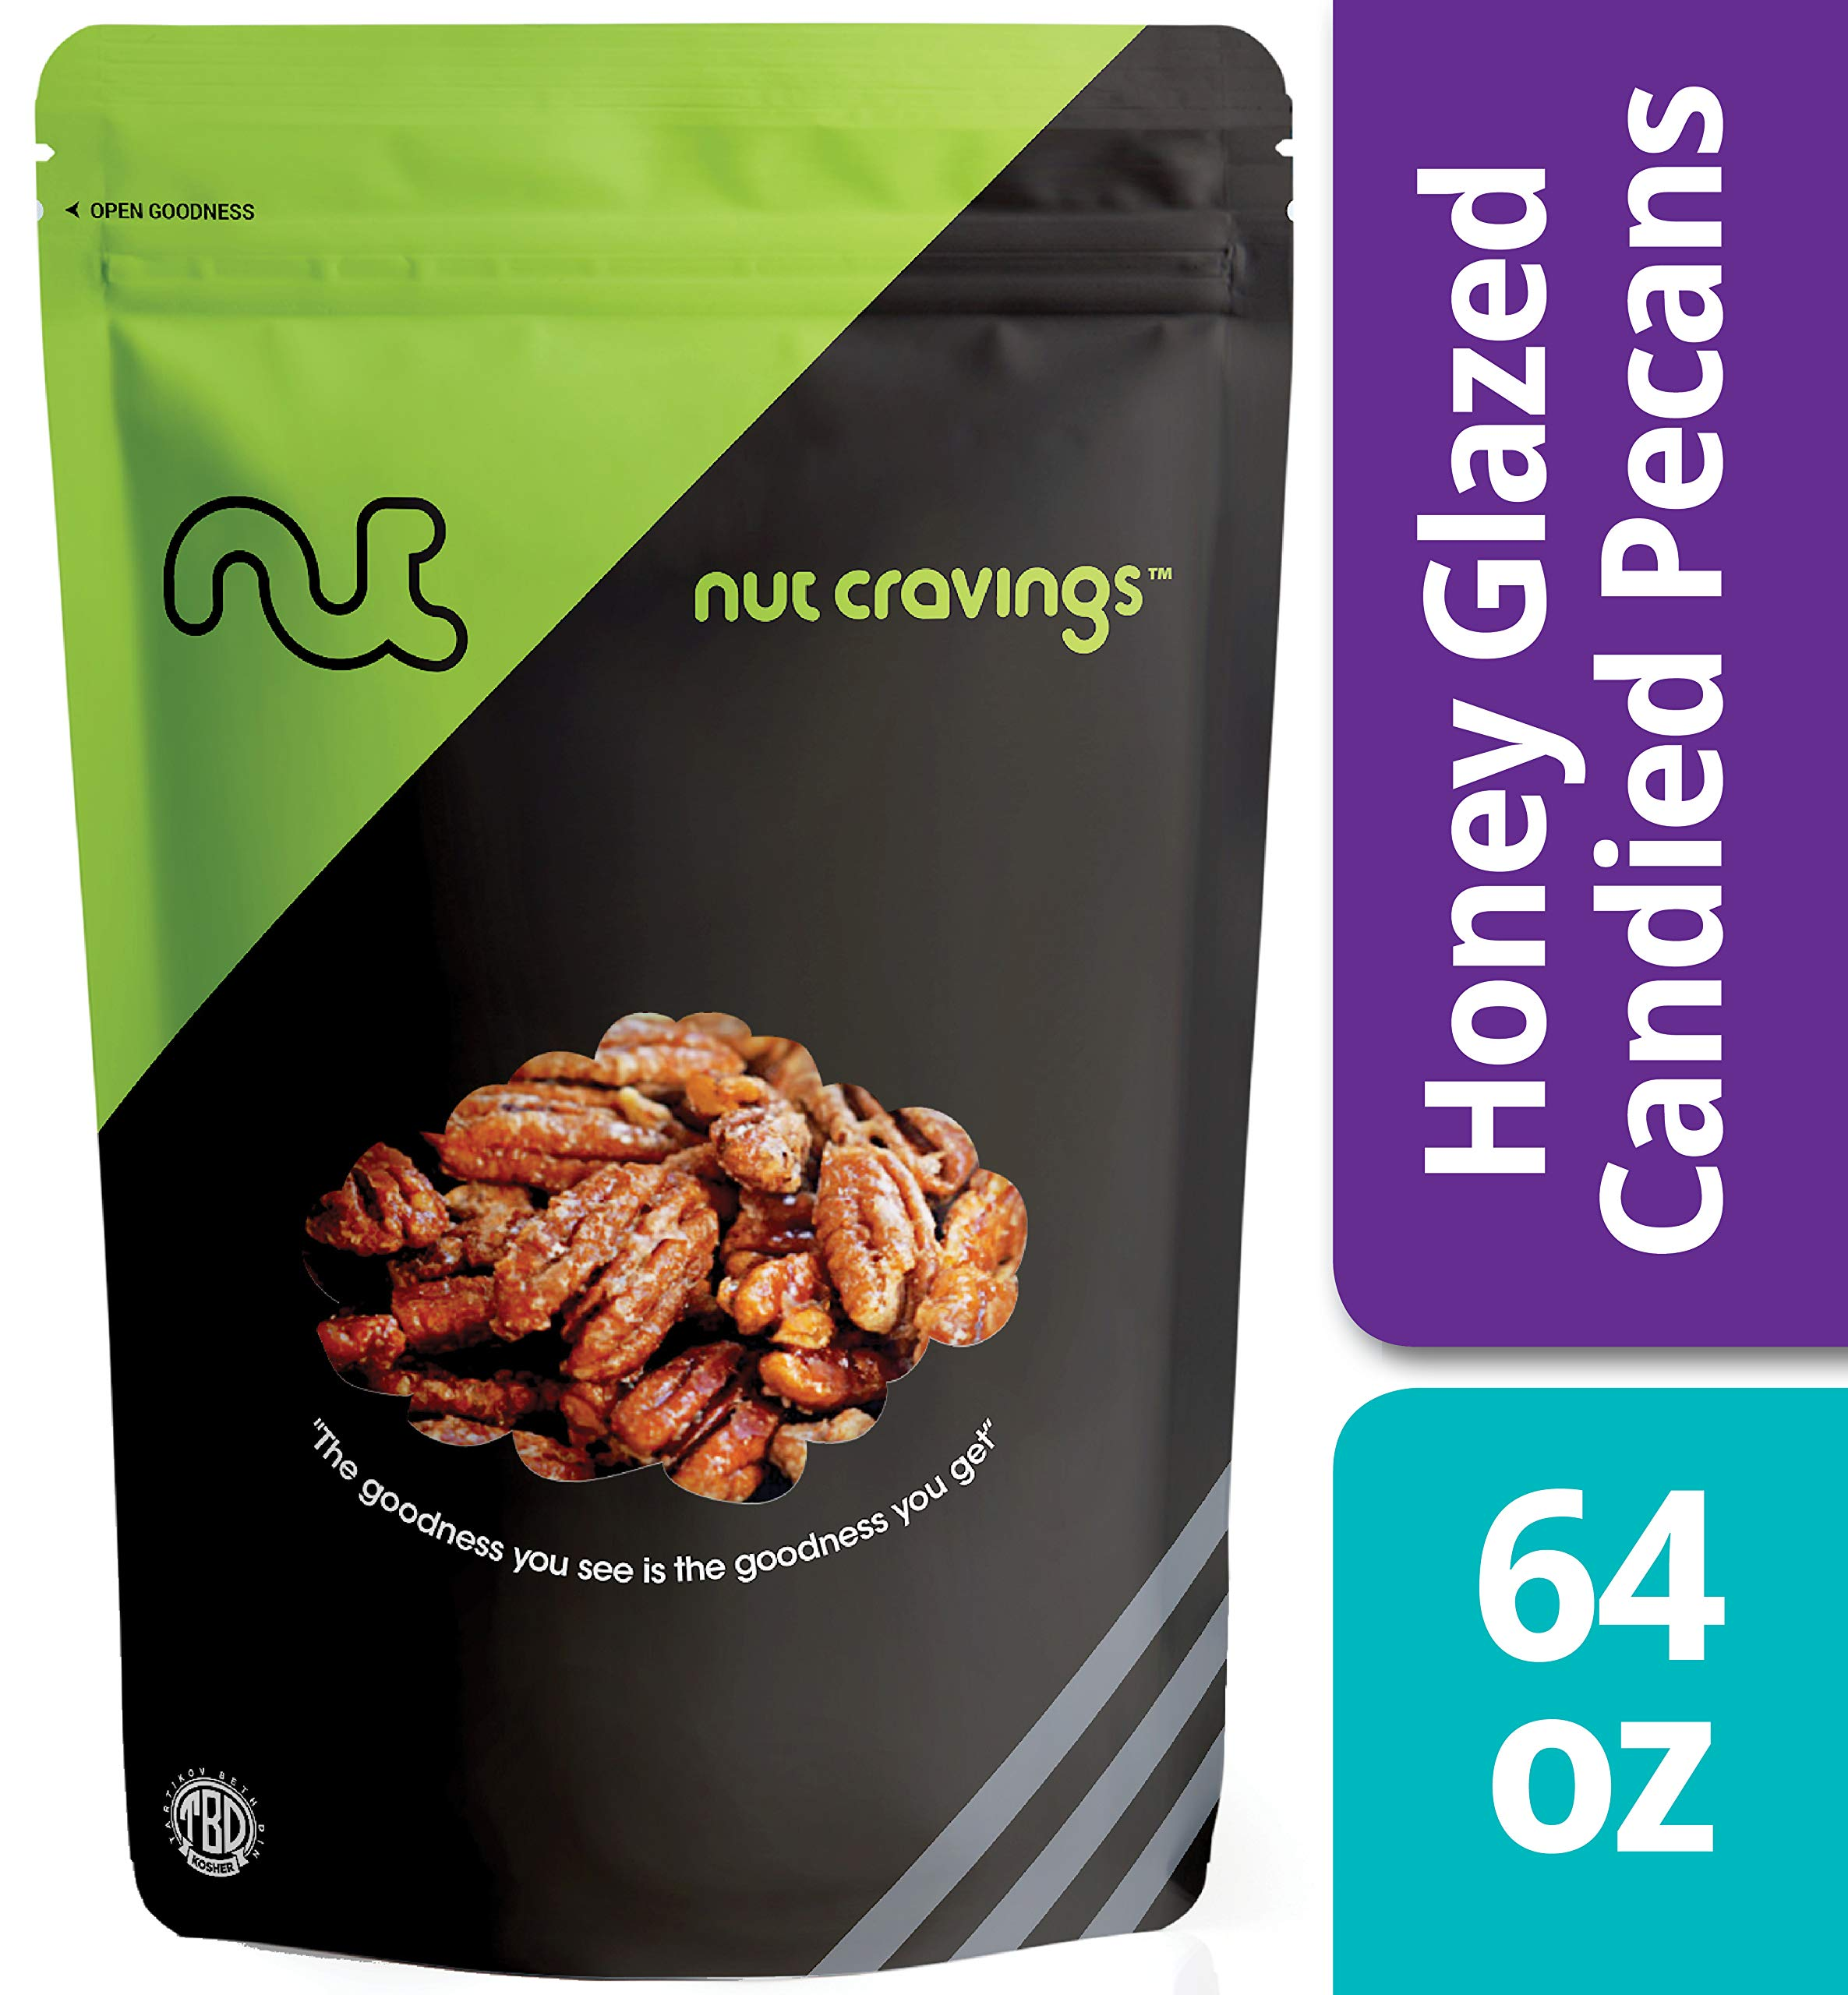 Nut Cravings - Fresh Honey Glazed Candied Pecans (4 Pounds) - In Resealable Bag - 64 Ounce by Nut Cravings